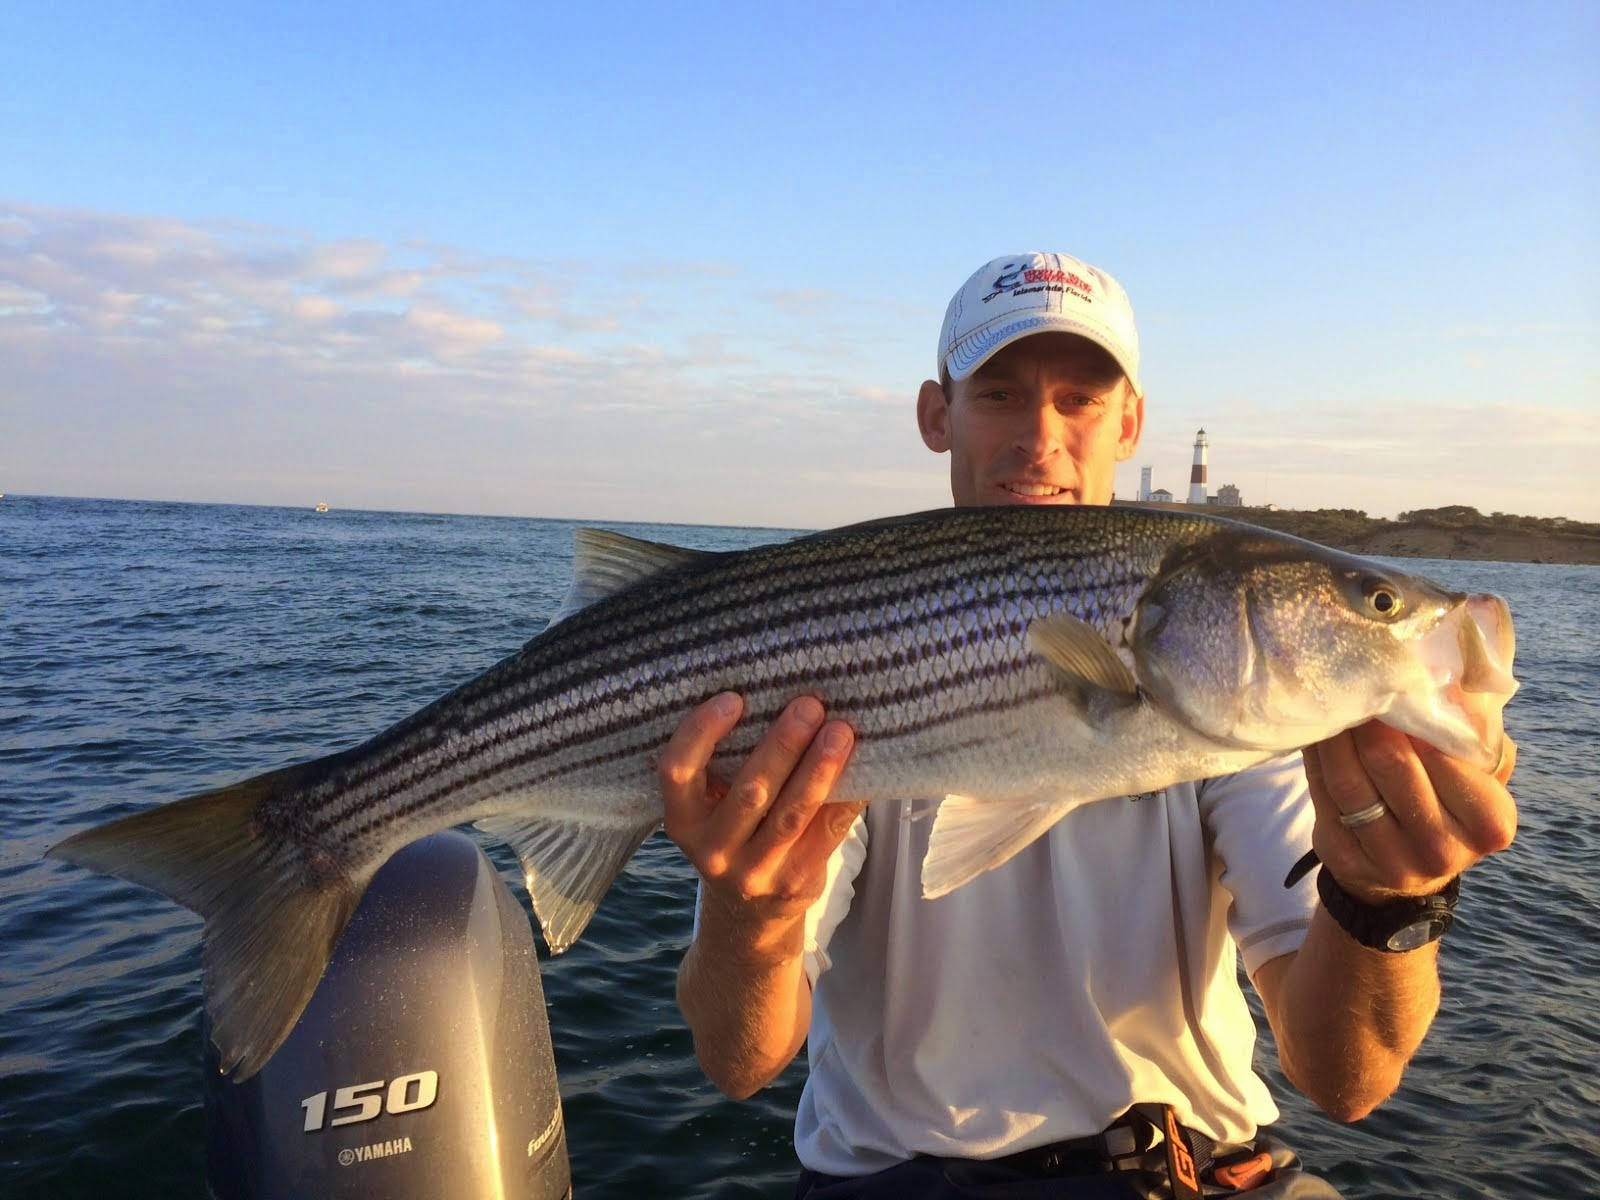 Jersey cape guide service montauk fishing report for Fishing report nj